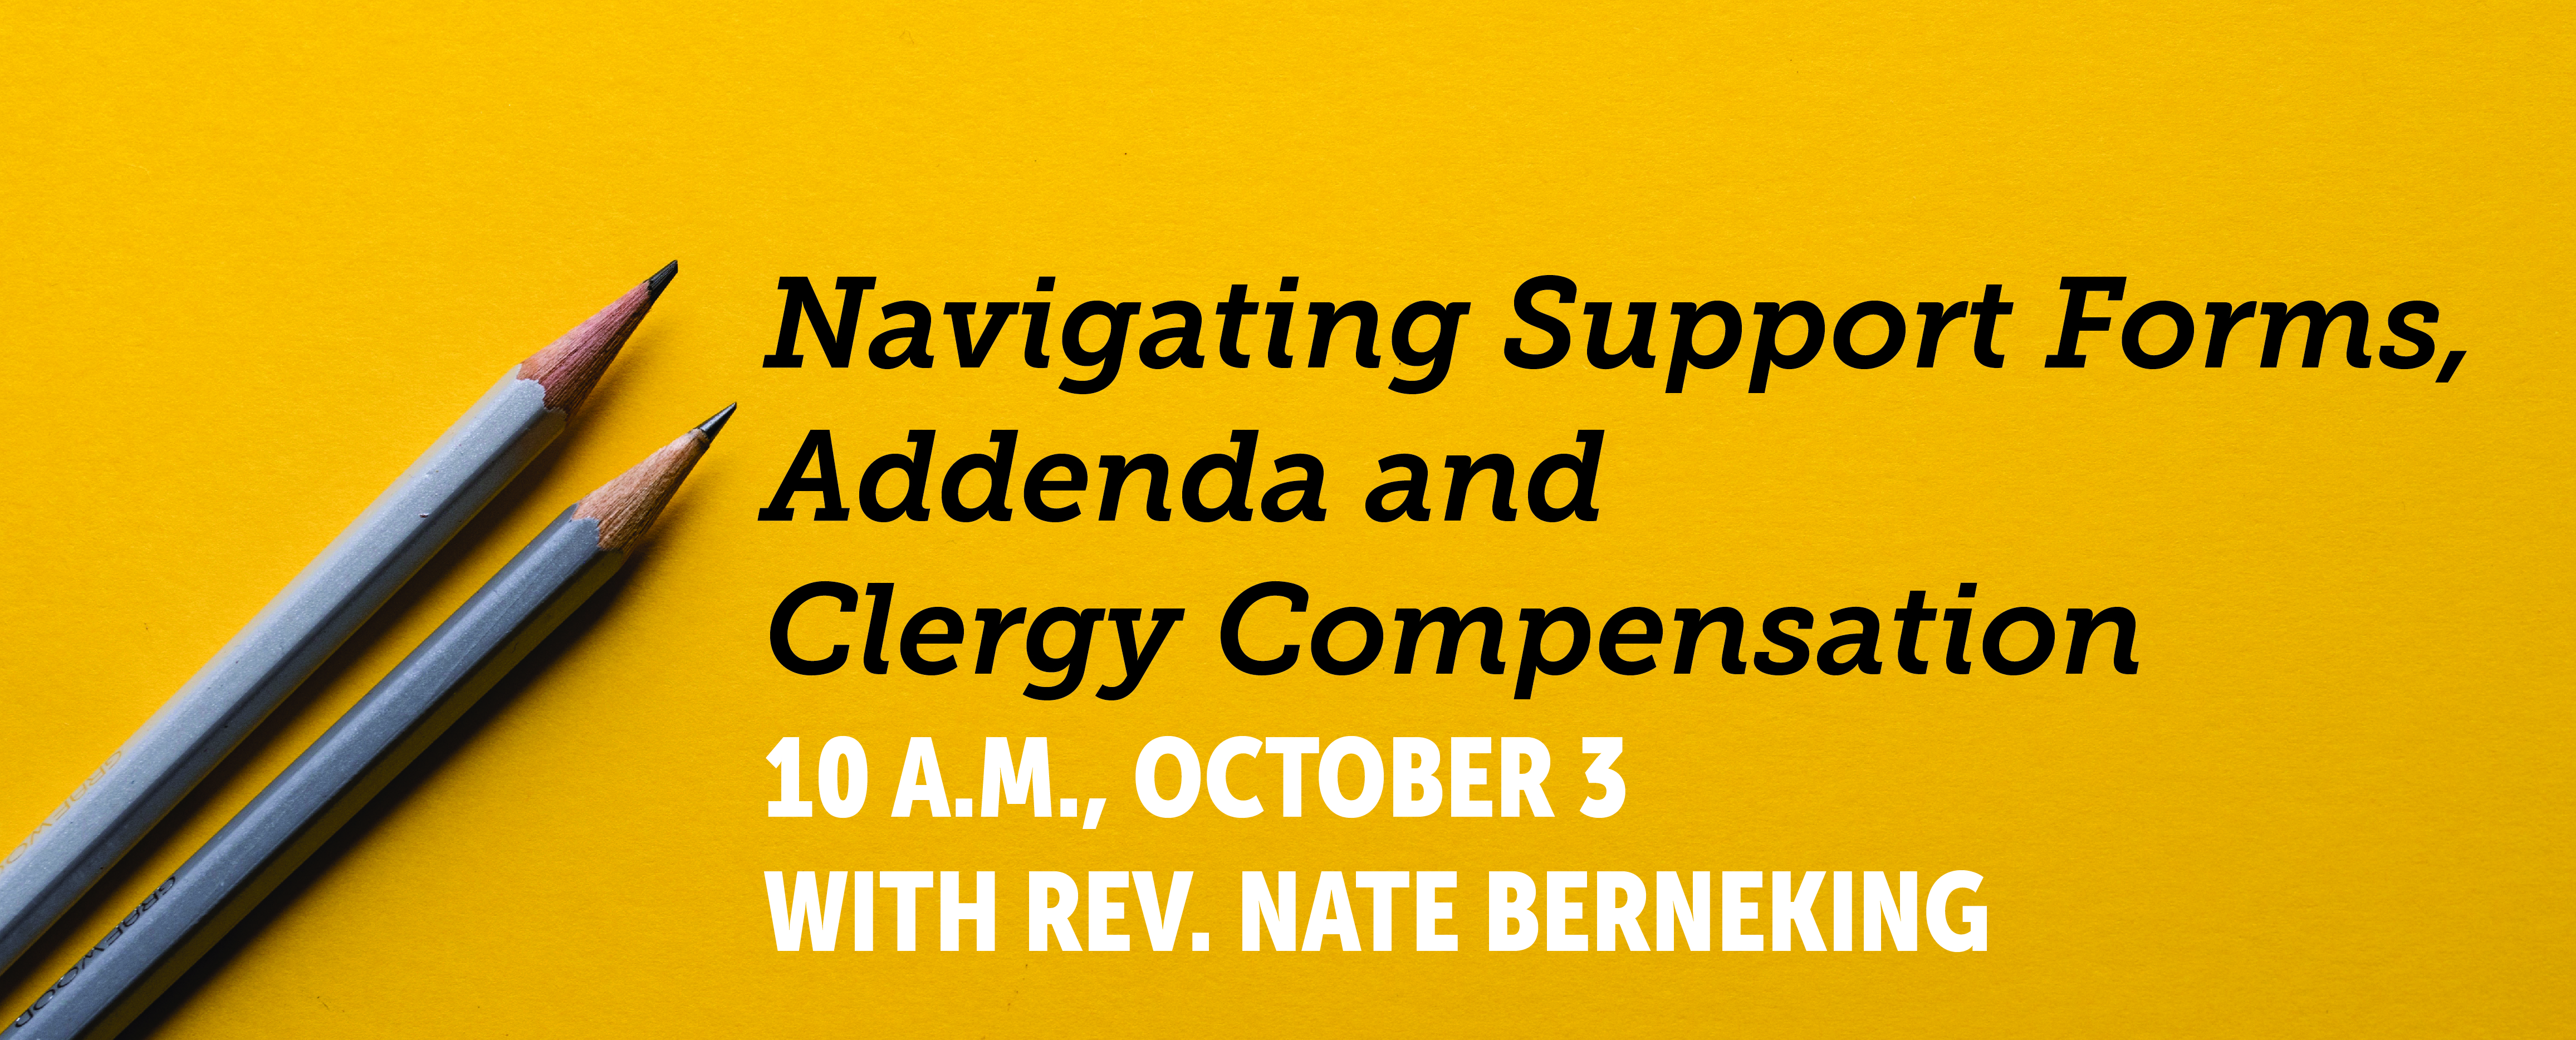 Navigating Clergy Forms, Addenda and Compensation Webinar